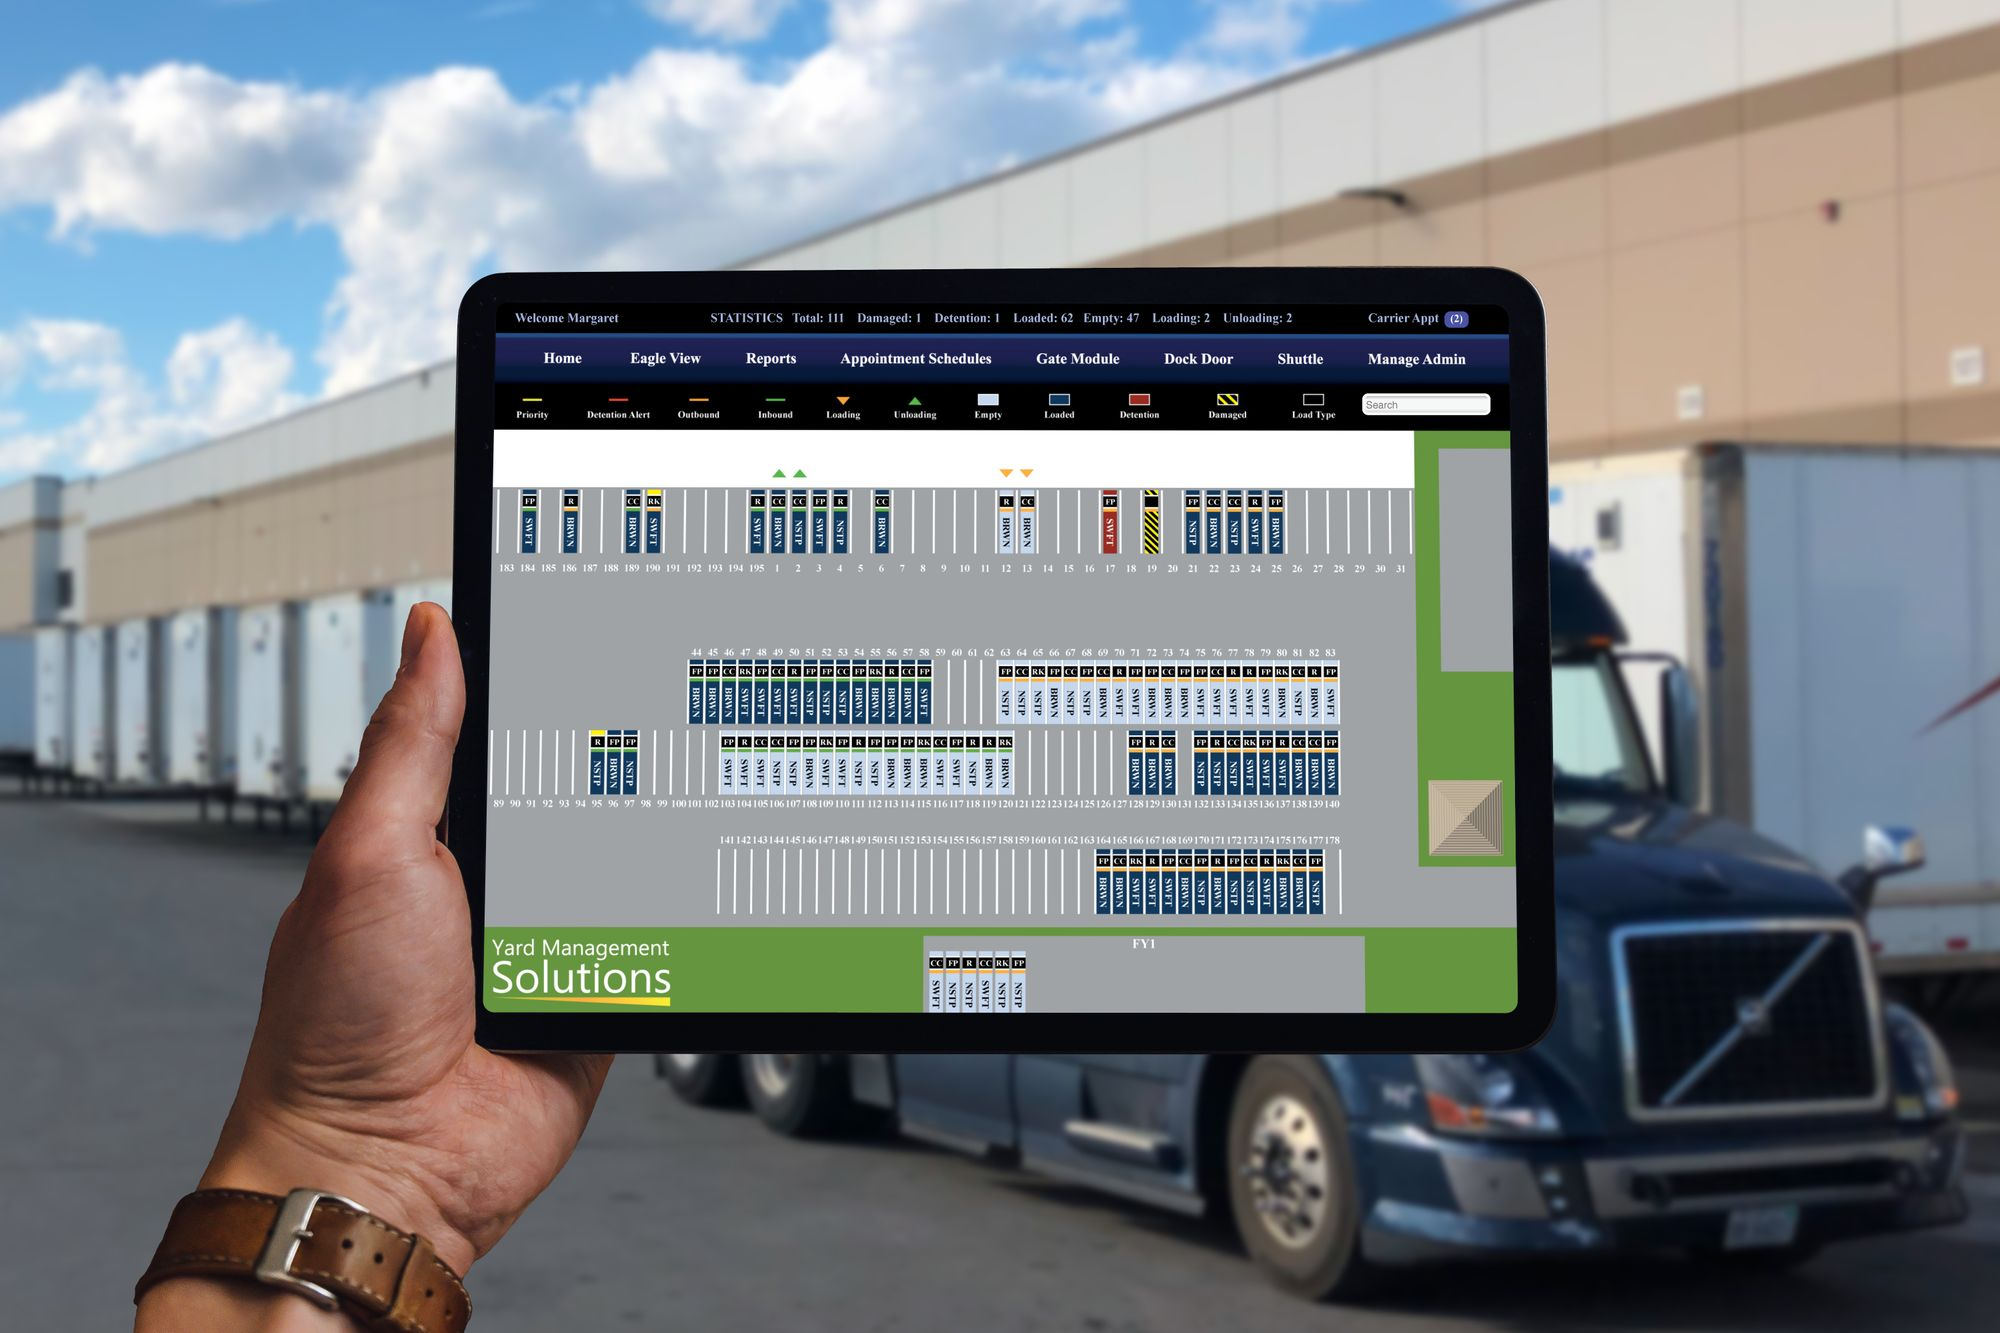 Yard Management Solutions software running on tablet in shipping yard